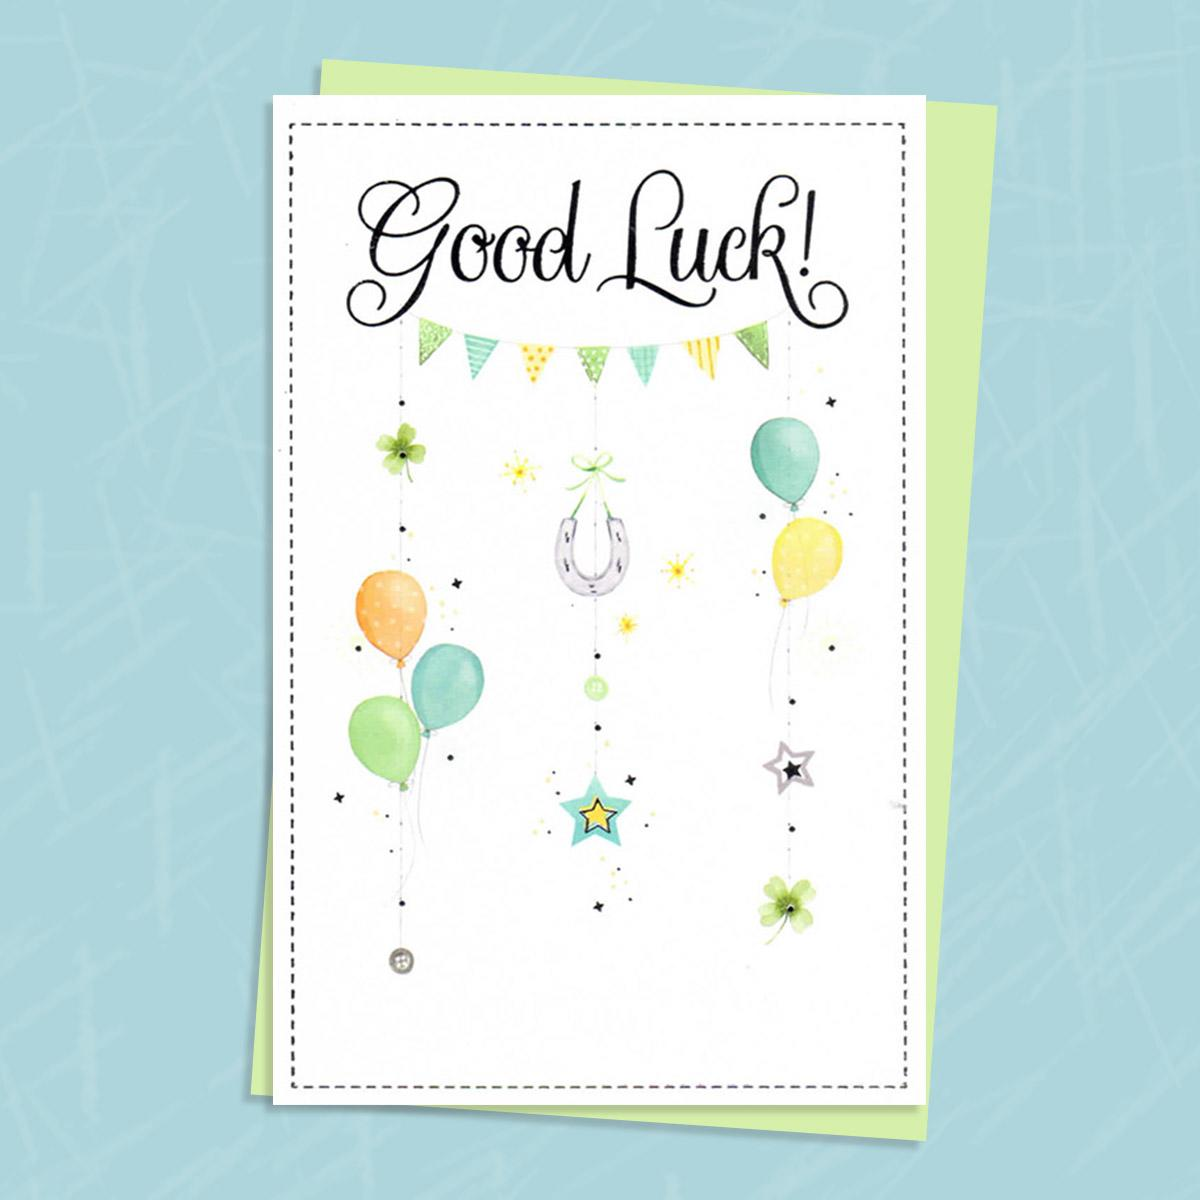 Good Luck Card With Horseshoes And Balloons On It With Envelope